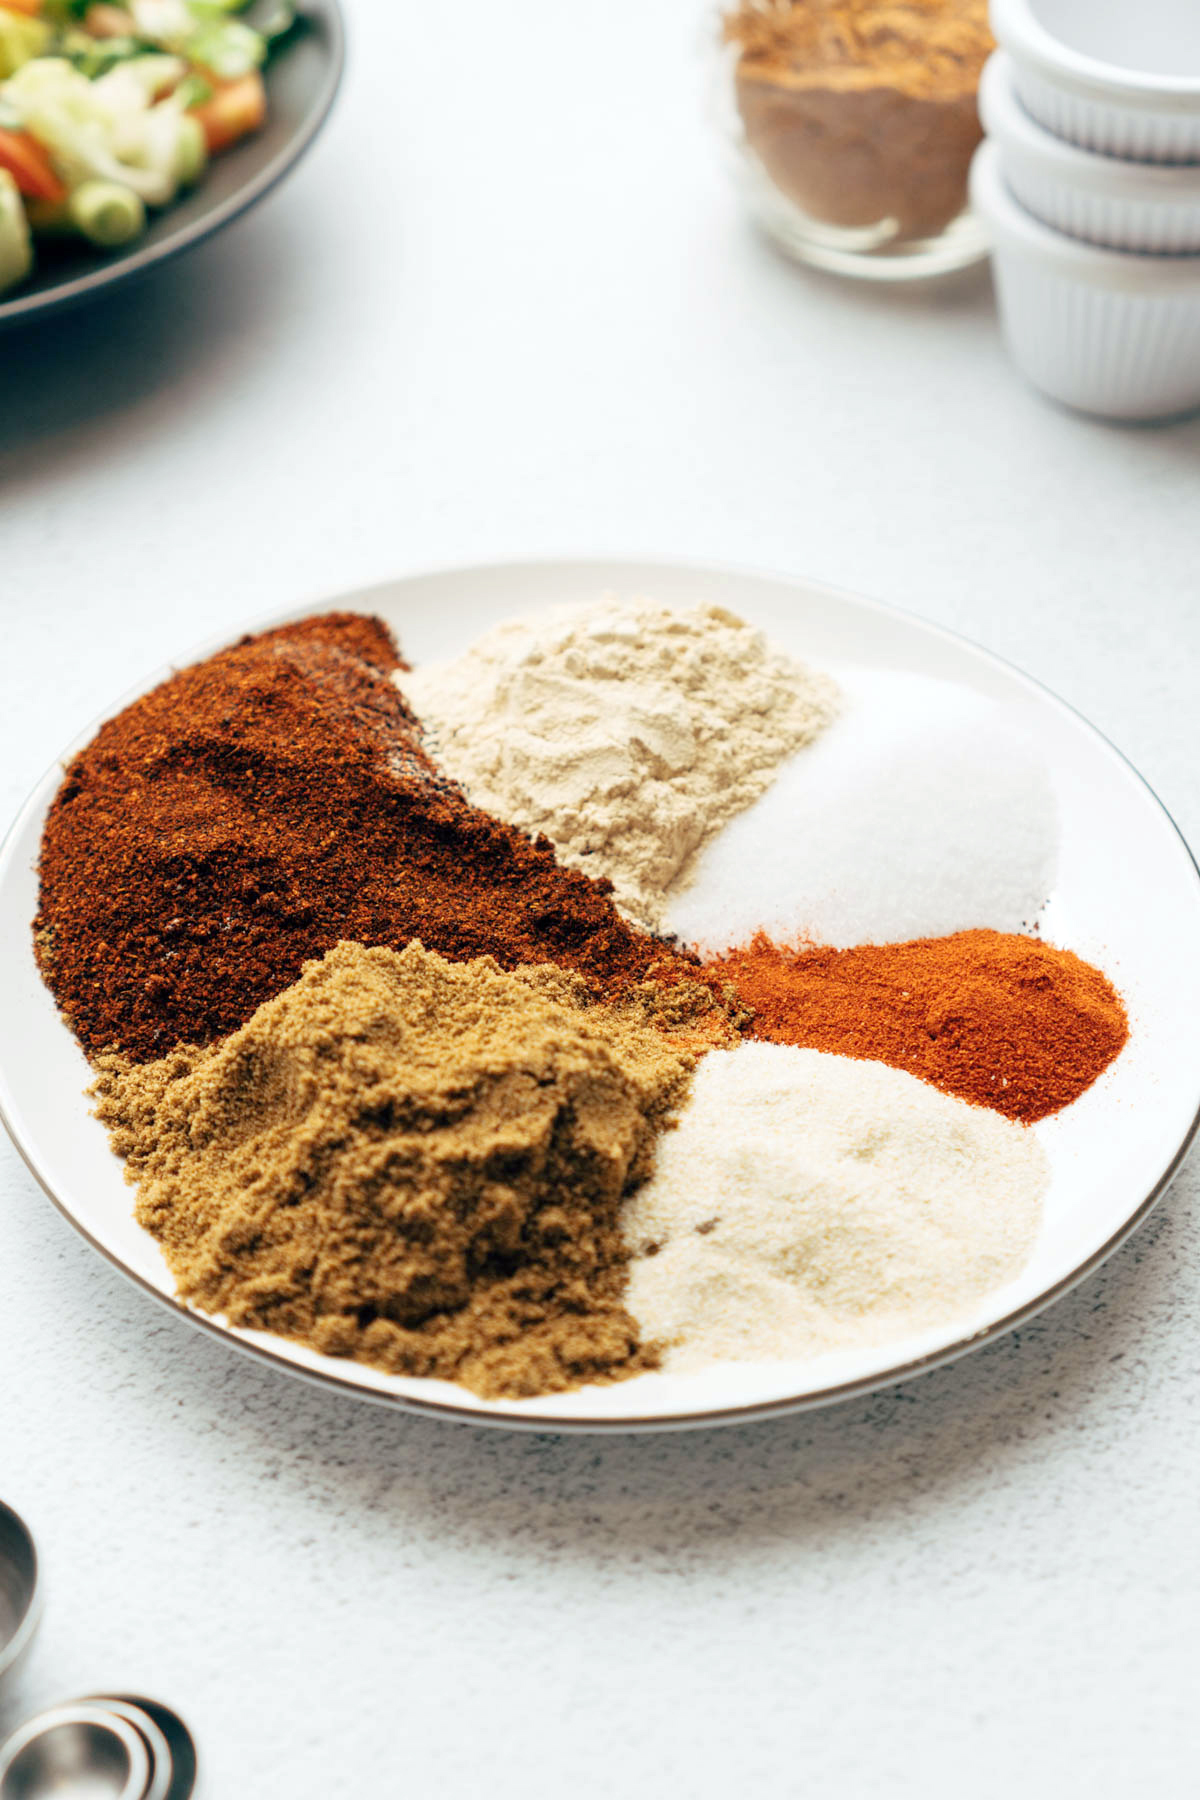 Spices for taco seasoning on plate.